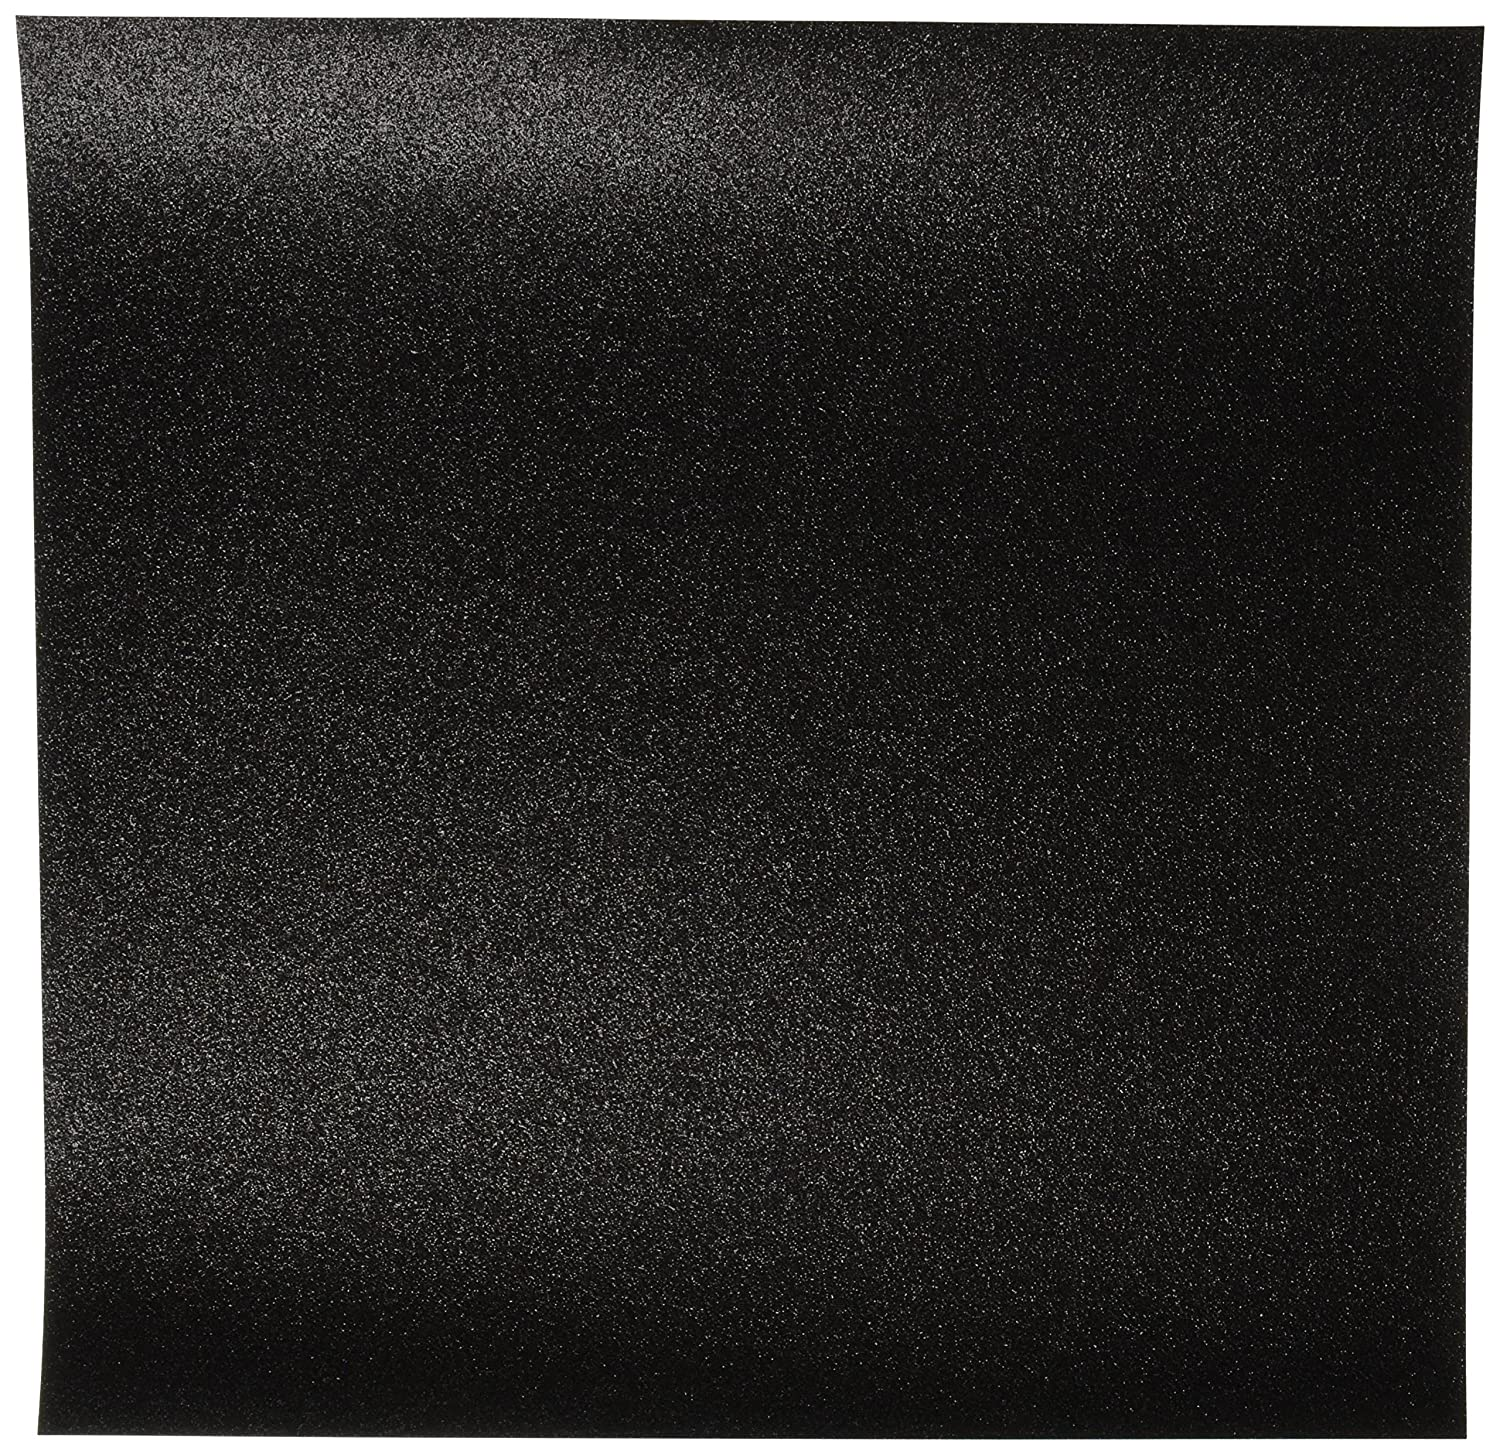 Glitter Cardstock 12-Inch by 12-Inch, Black, Pack of 15 Notions - In Network GCS-014